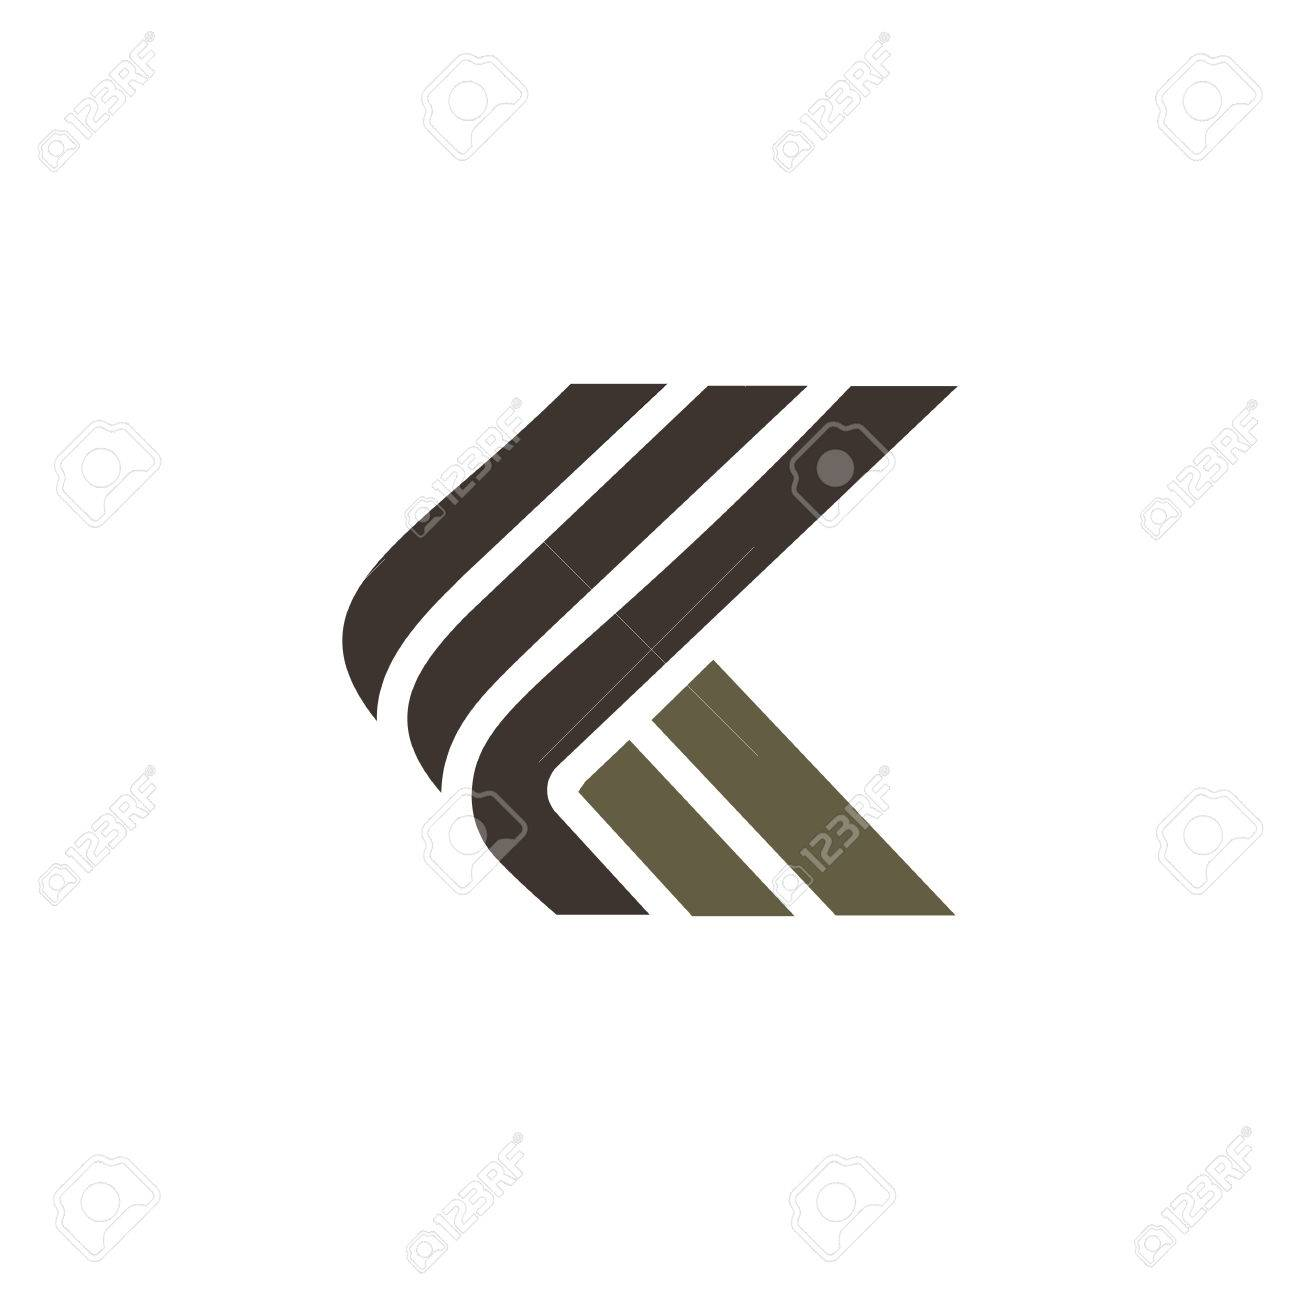 letter k luxury logo design concept template royalty free cliparts